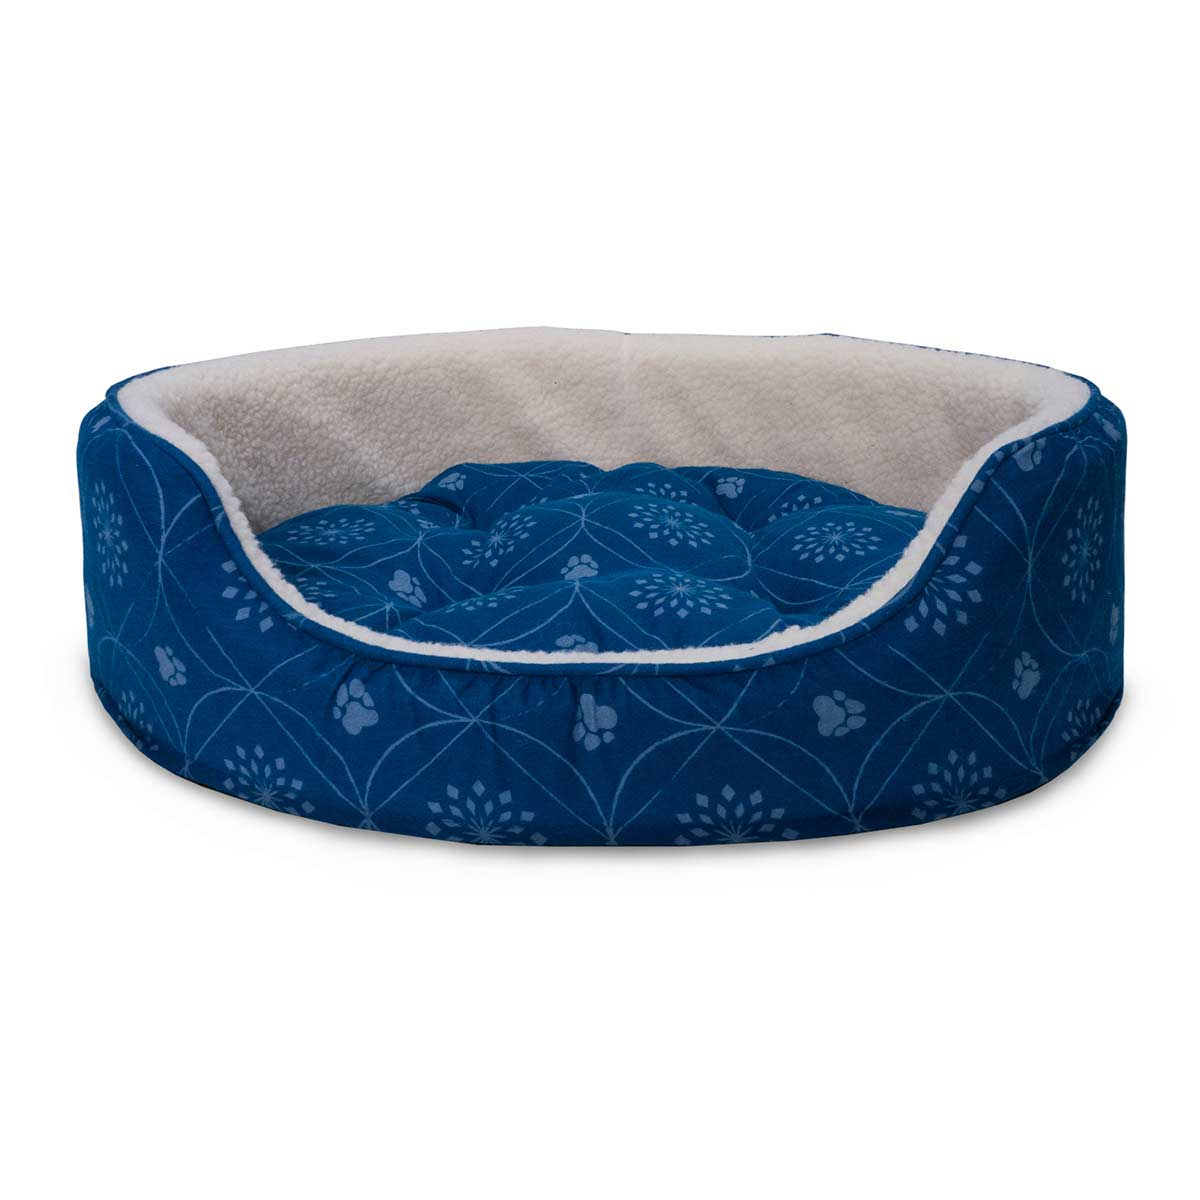 Twilight Blue FurHaven Nap Paw Print Decor Flannel Oval Pet Bed - 18 by 22.5 inches